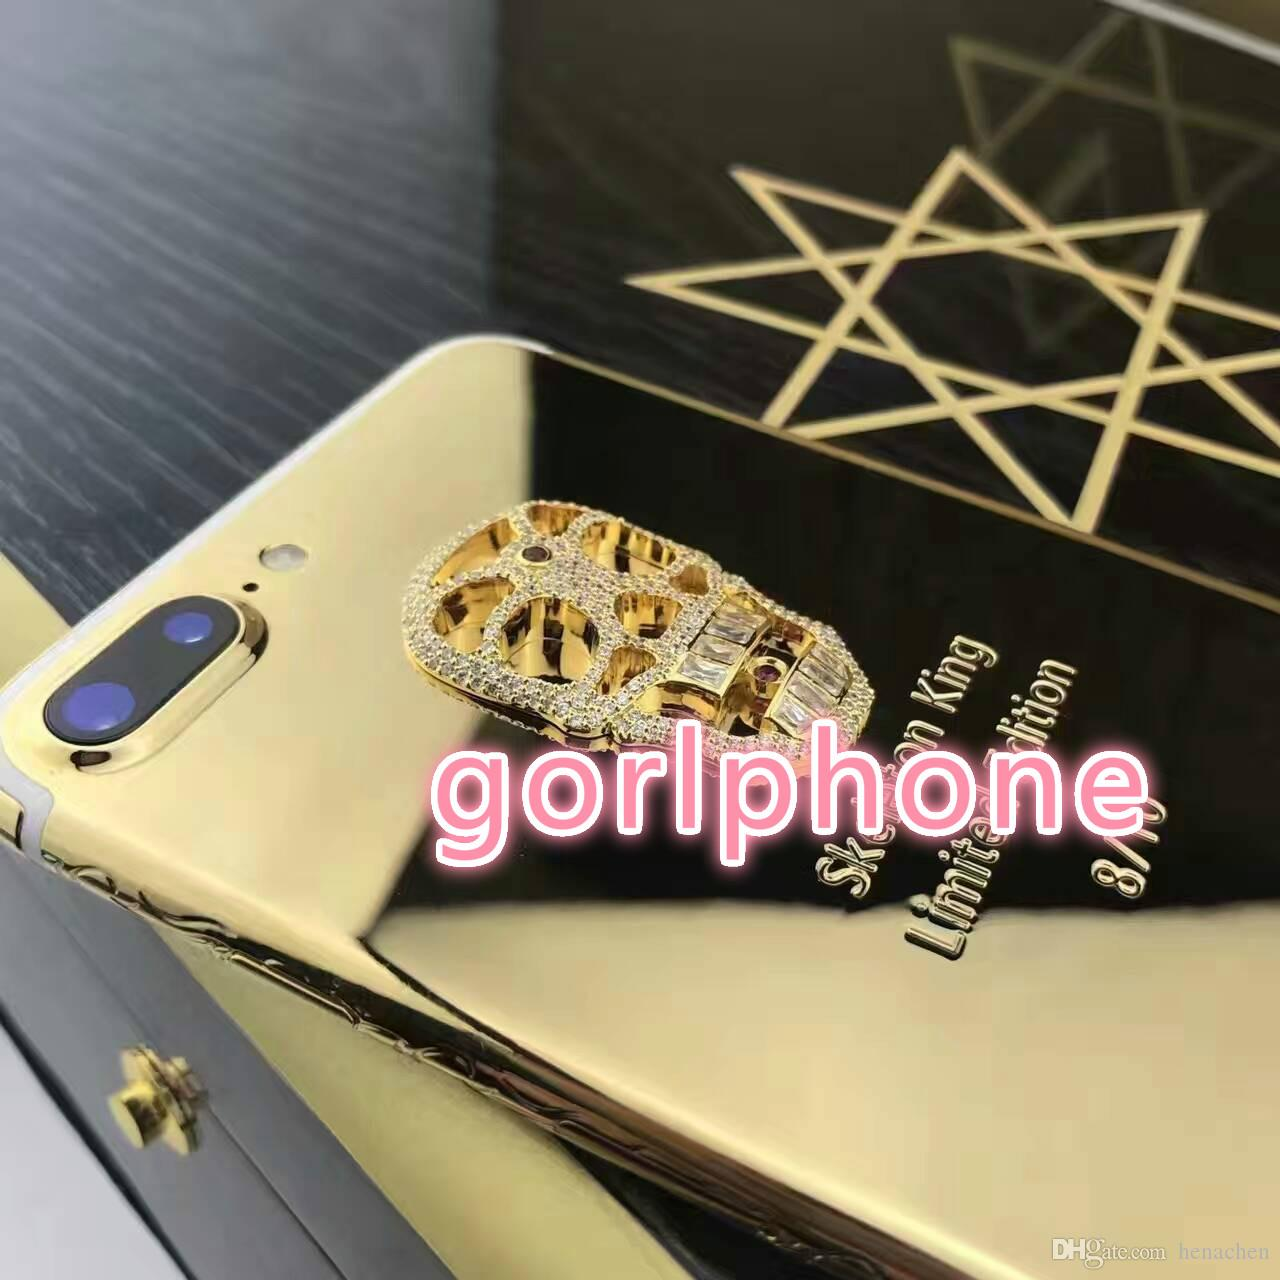 Real Gold skeletonPlating Back Housing Cover Skin Battery Door For iPhone 7 7+ Multifunction Real gold case for iPhone7 7 plus